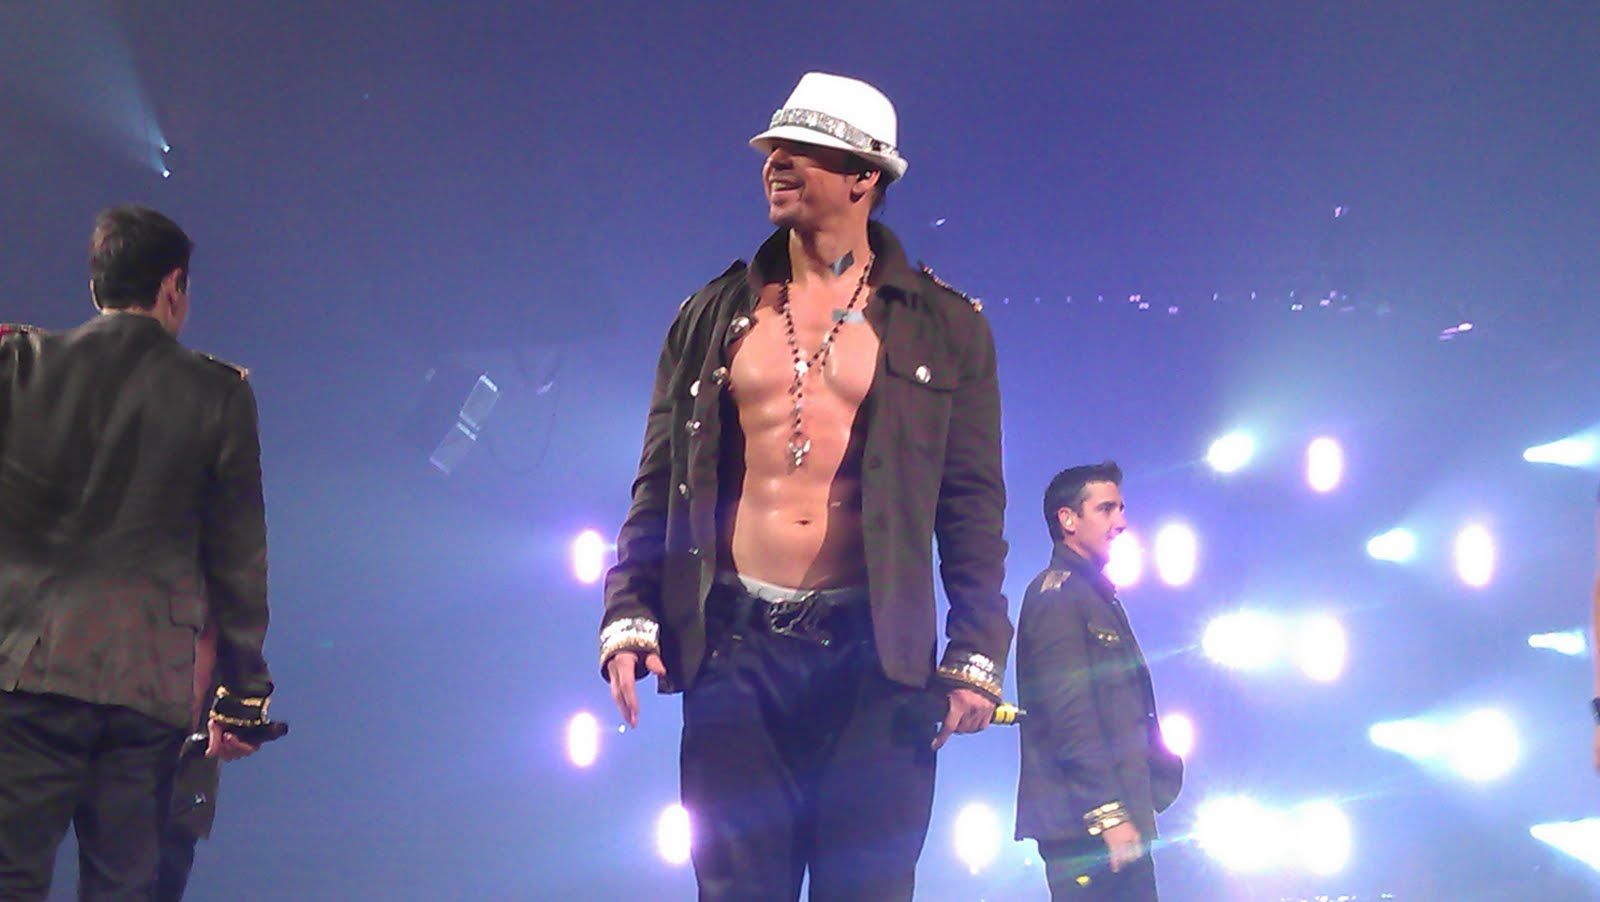 New Kids On The Block ~ Donnie Wahlberg | Donnie Wahlberg ...